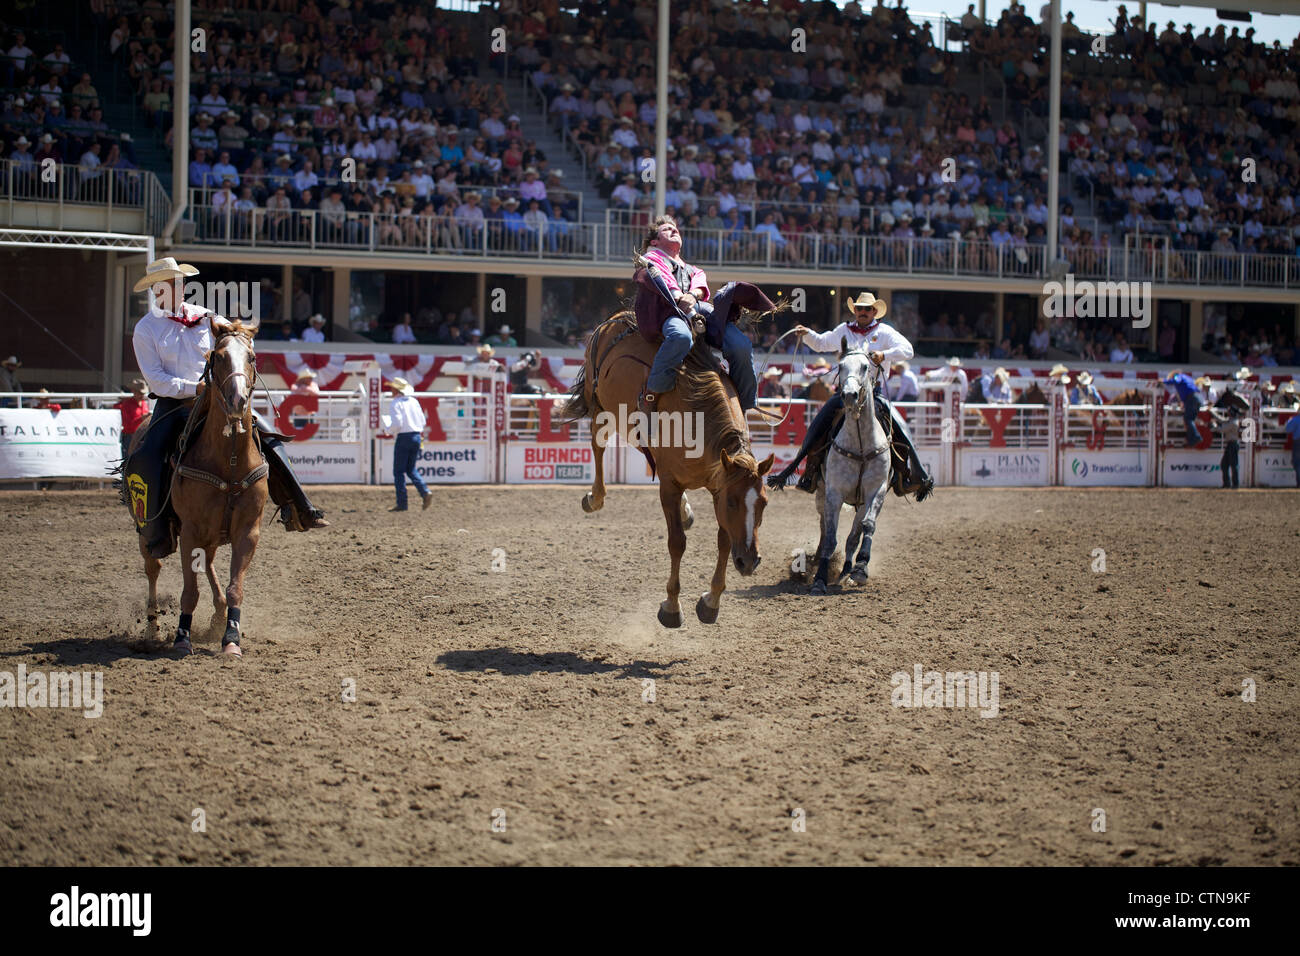 A rodeo clings onto his horse at the Calgary stampede event